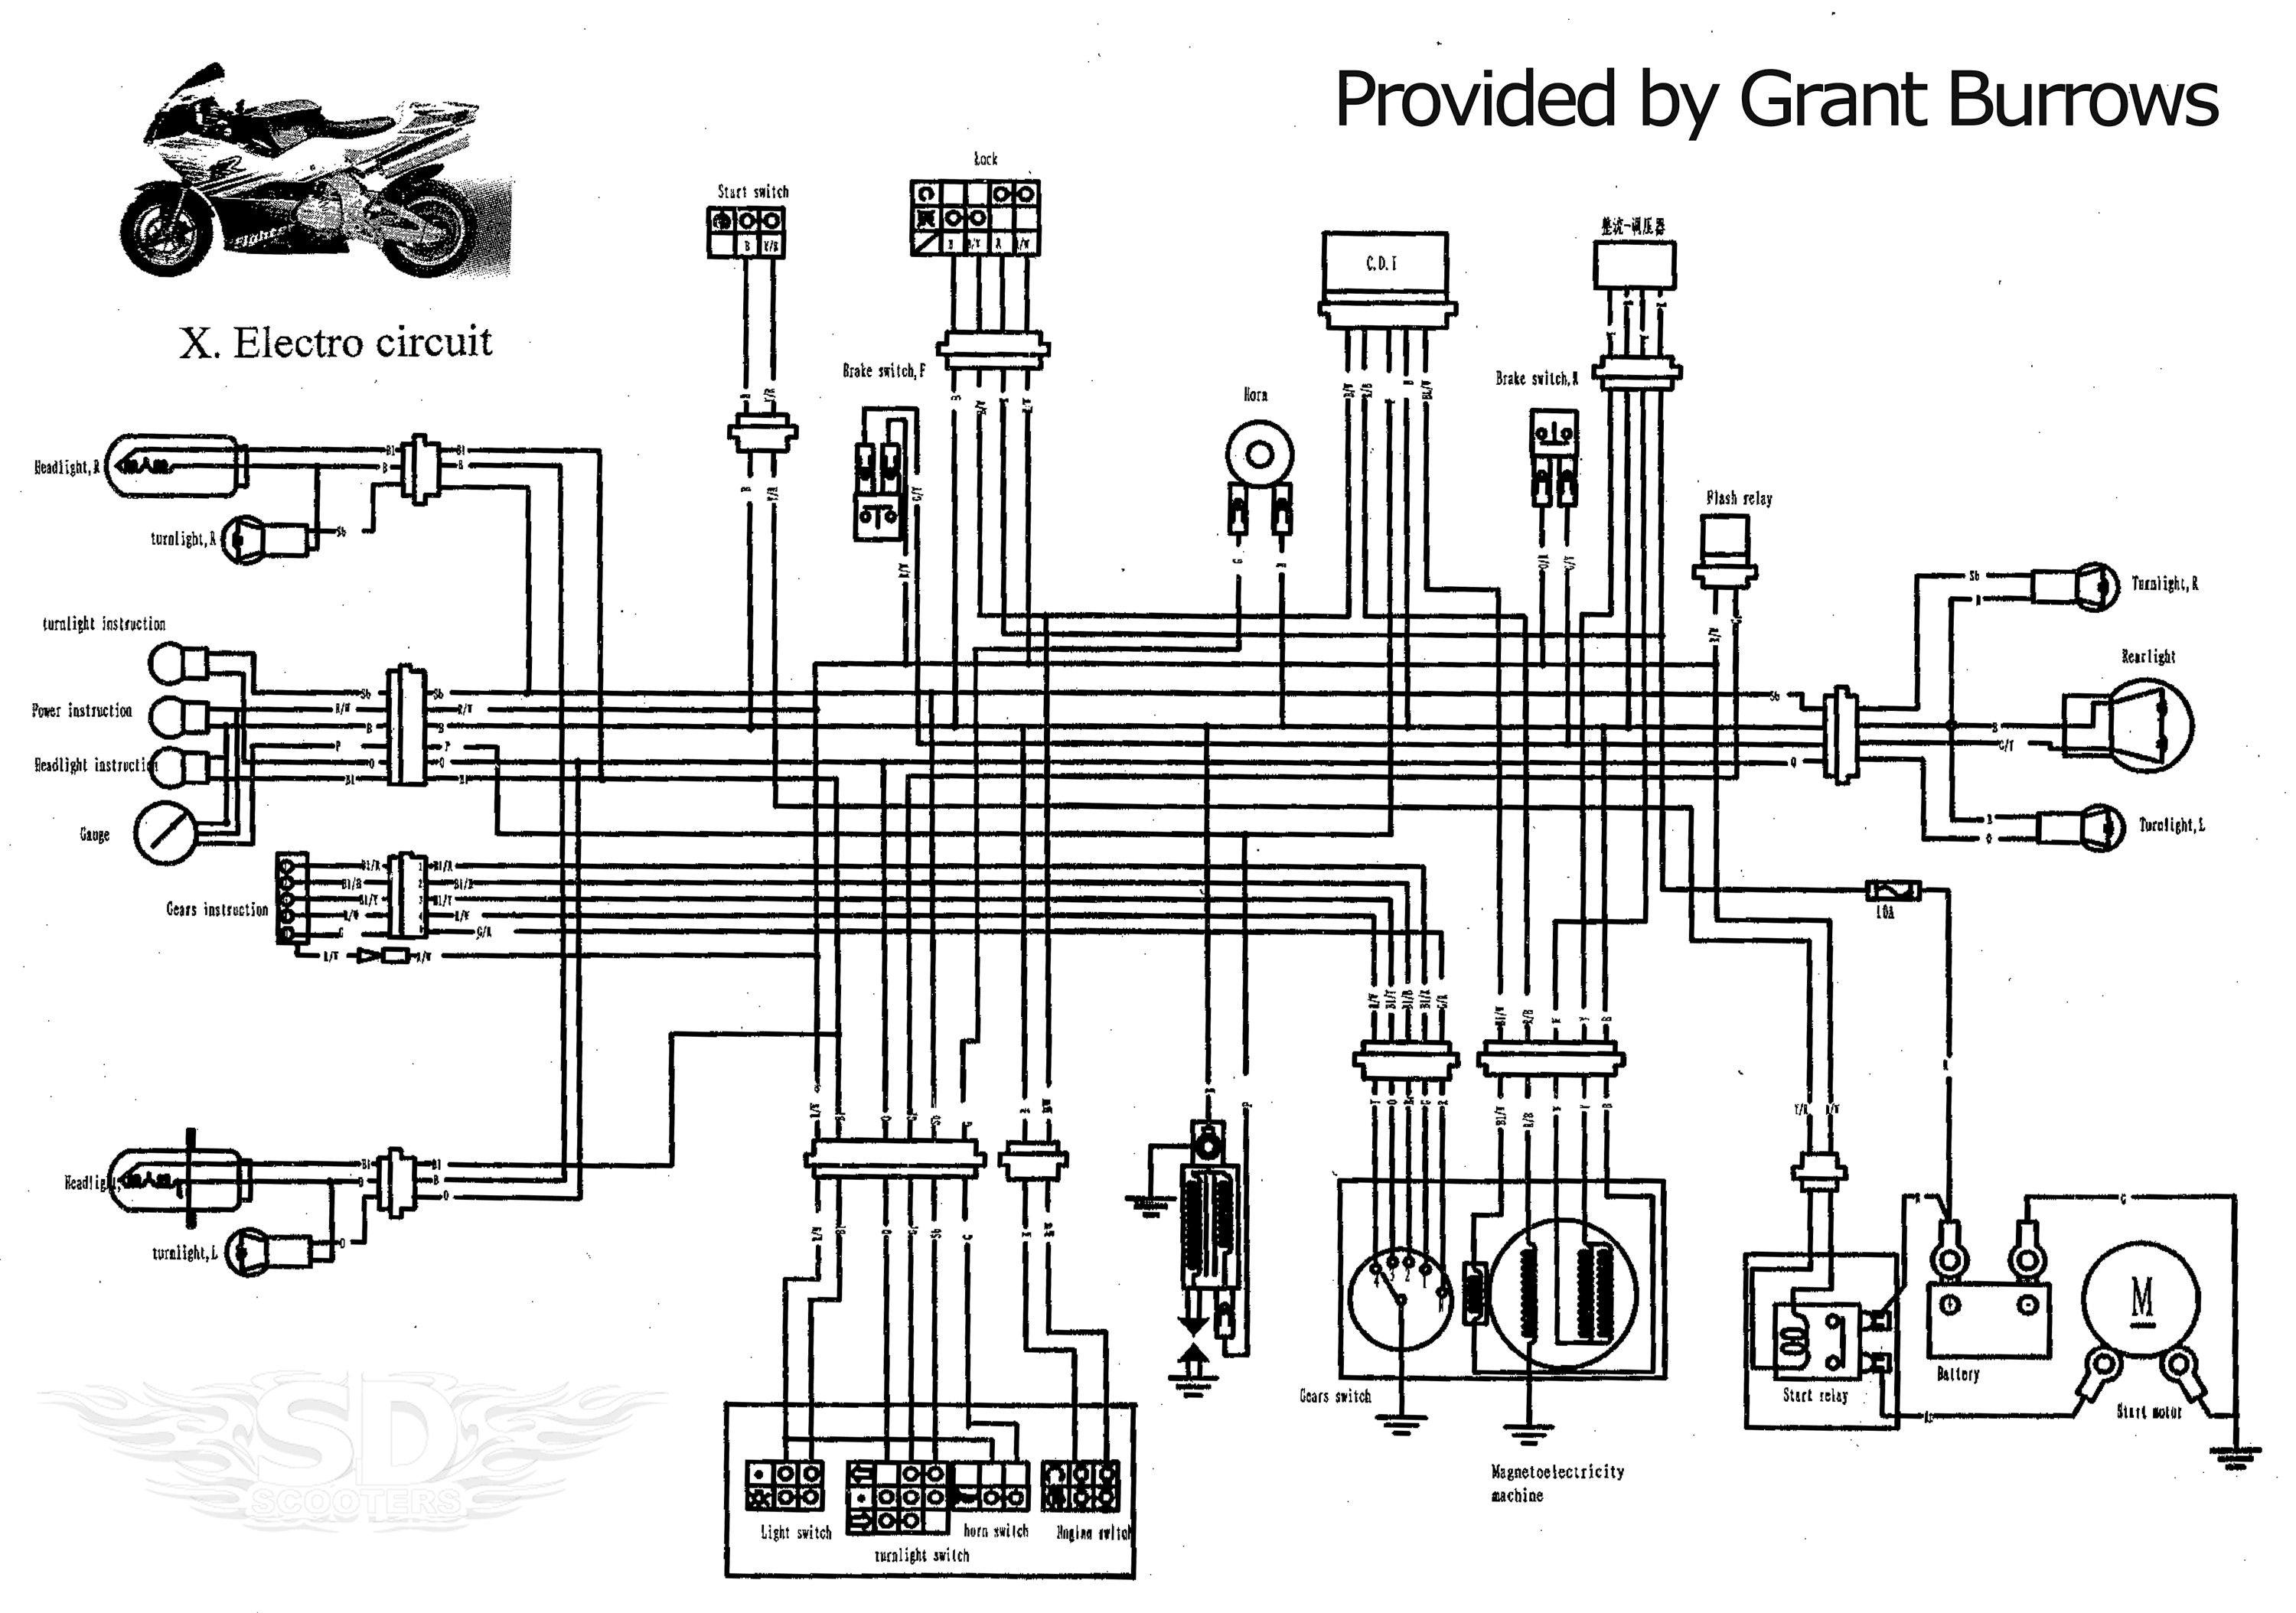 x22 wiring diagram provided by grant burrows